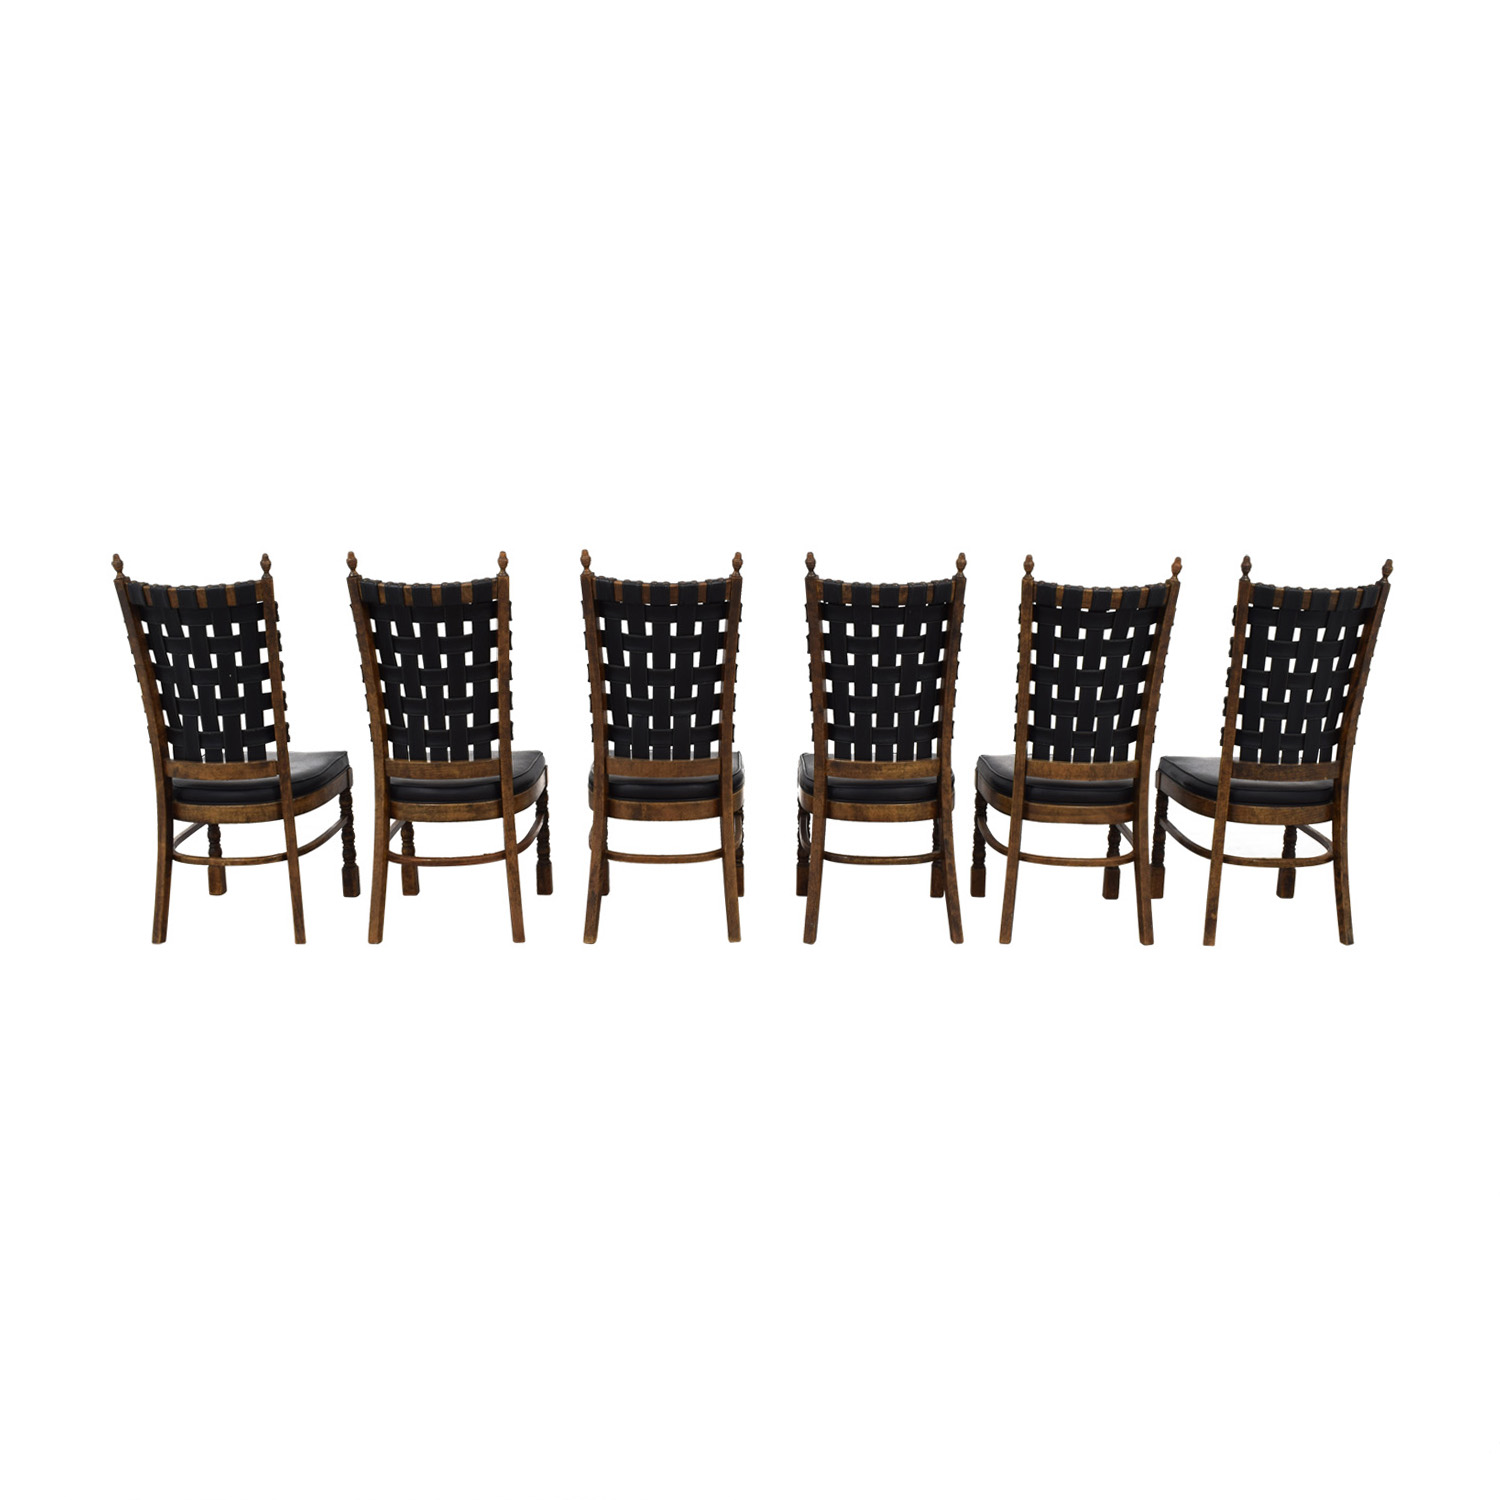 Bloomingdales Bloomingdales Wooden Chair Set on sale